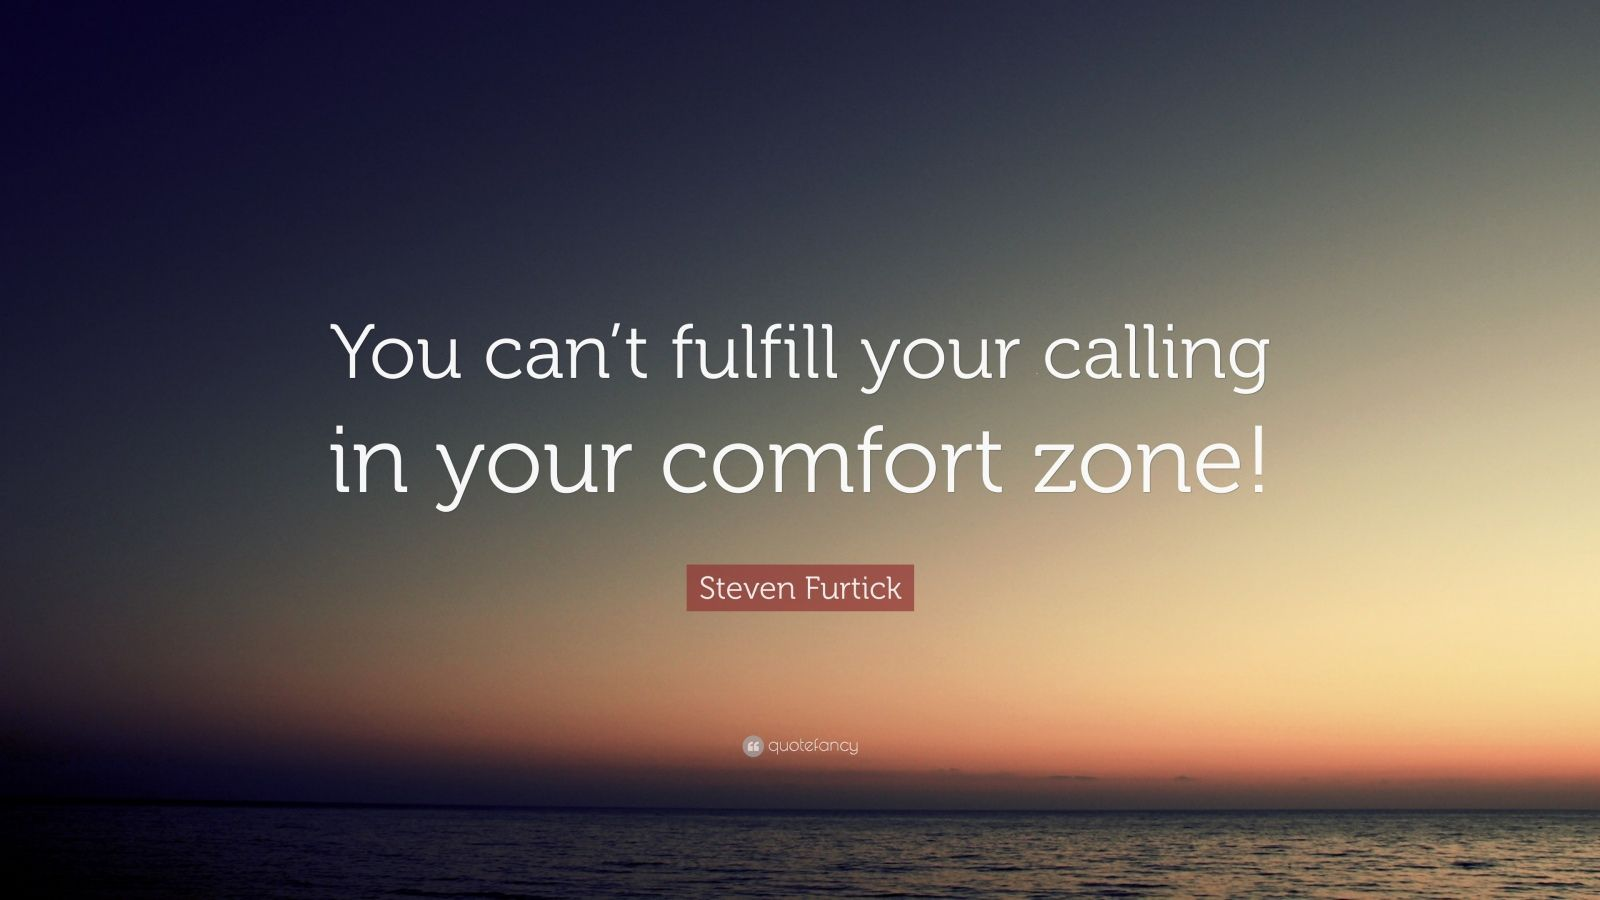 Steven Furtick Quote You Can T Fulfill Your Calling In Your Comfort Zone Steven Furtick Quotes Steven Furtick Comfort Zone Quotes